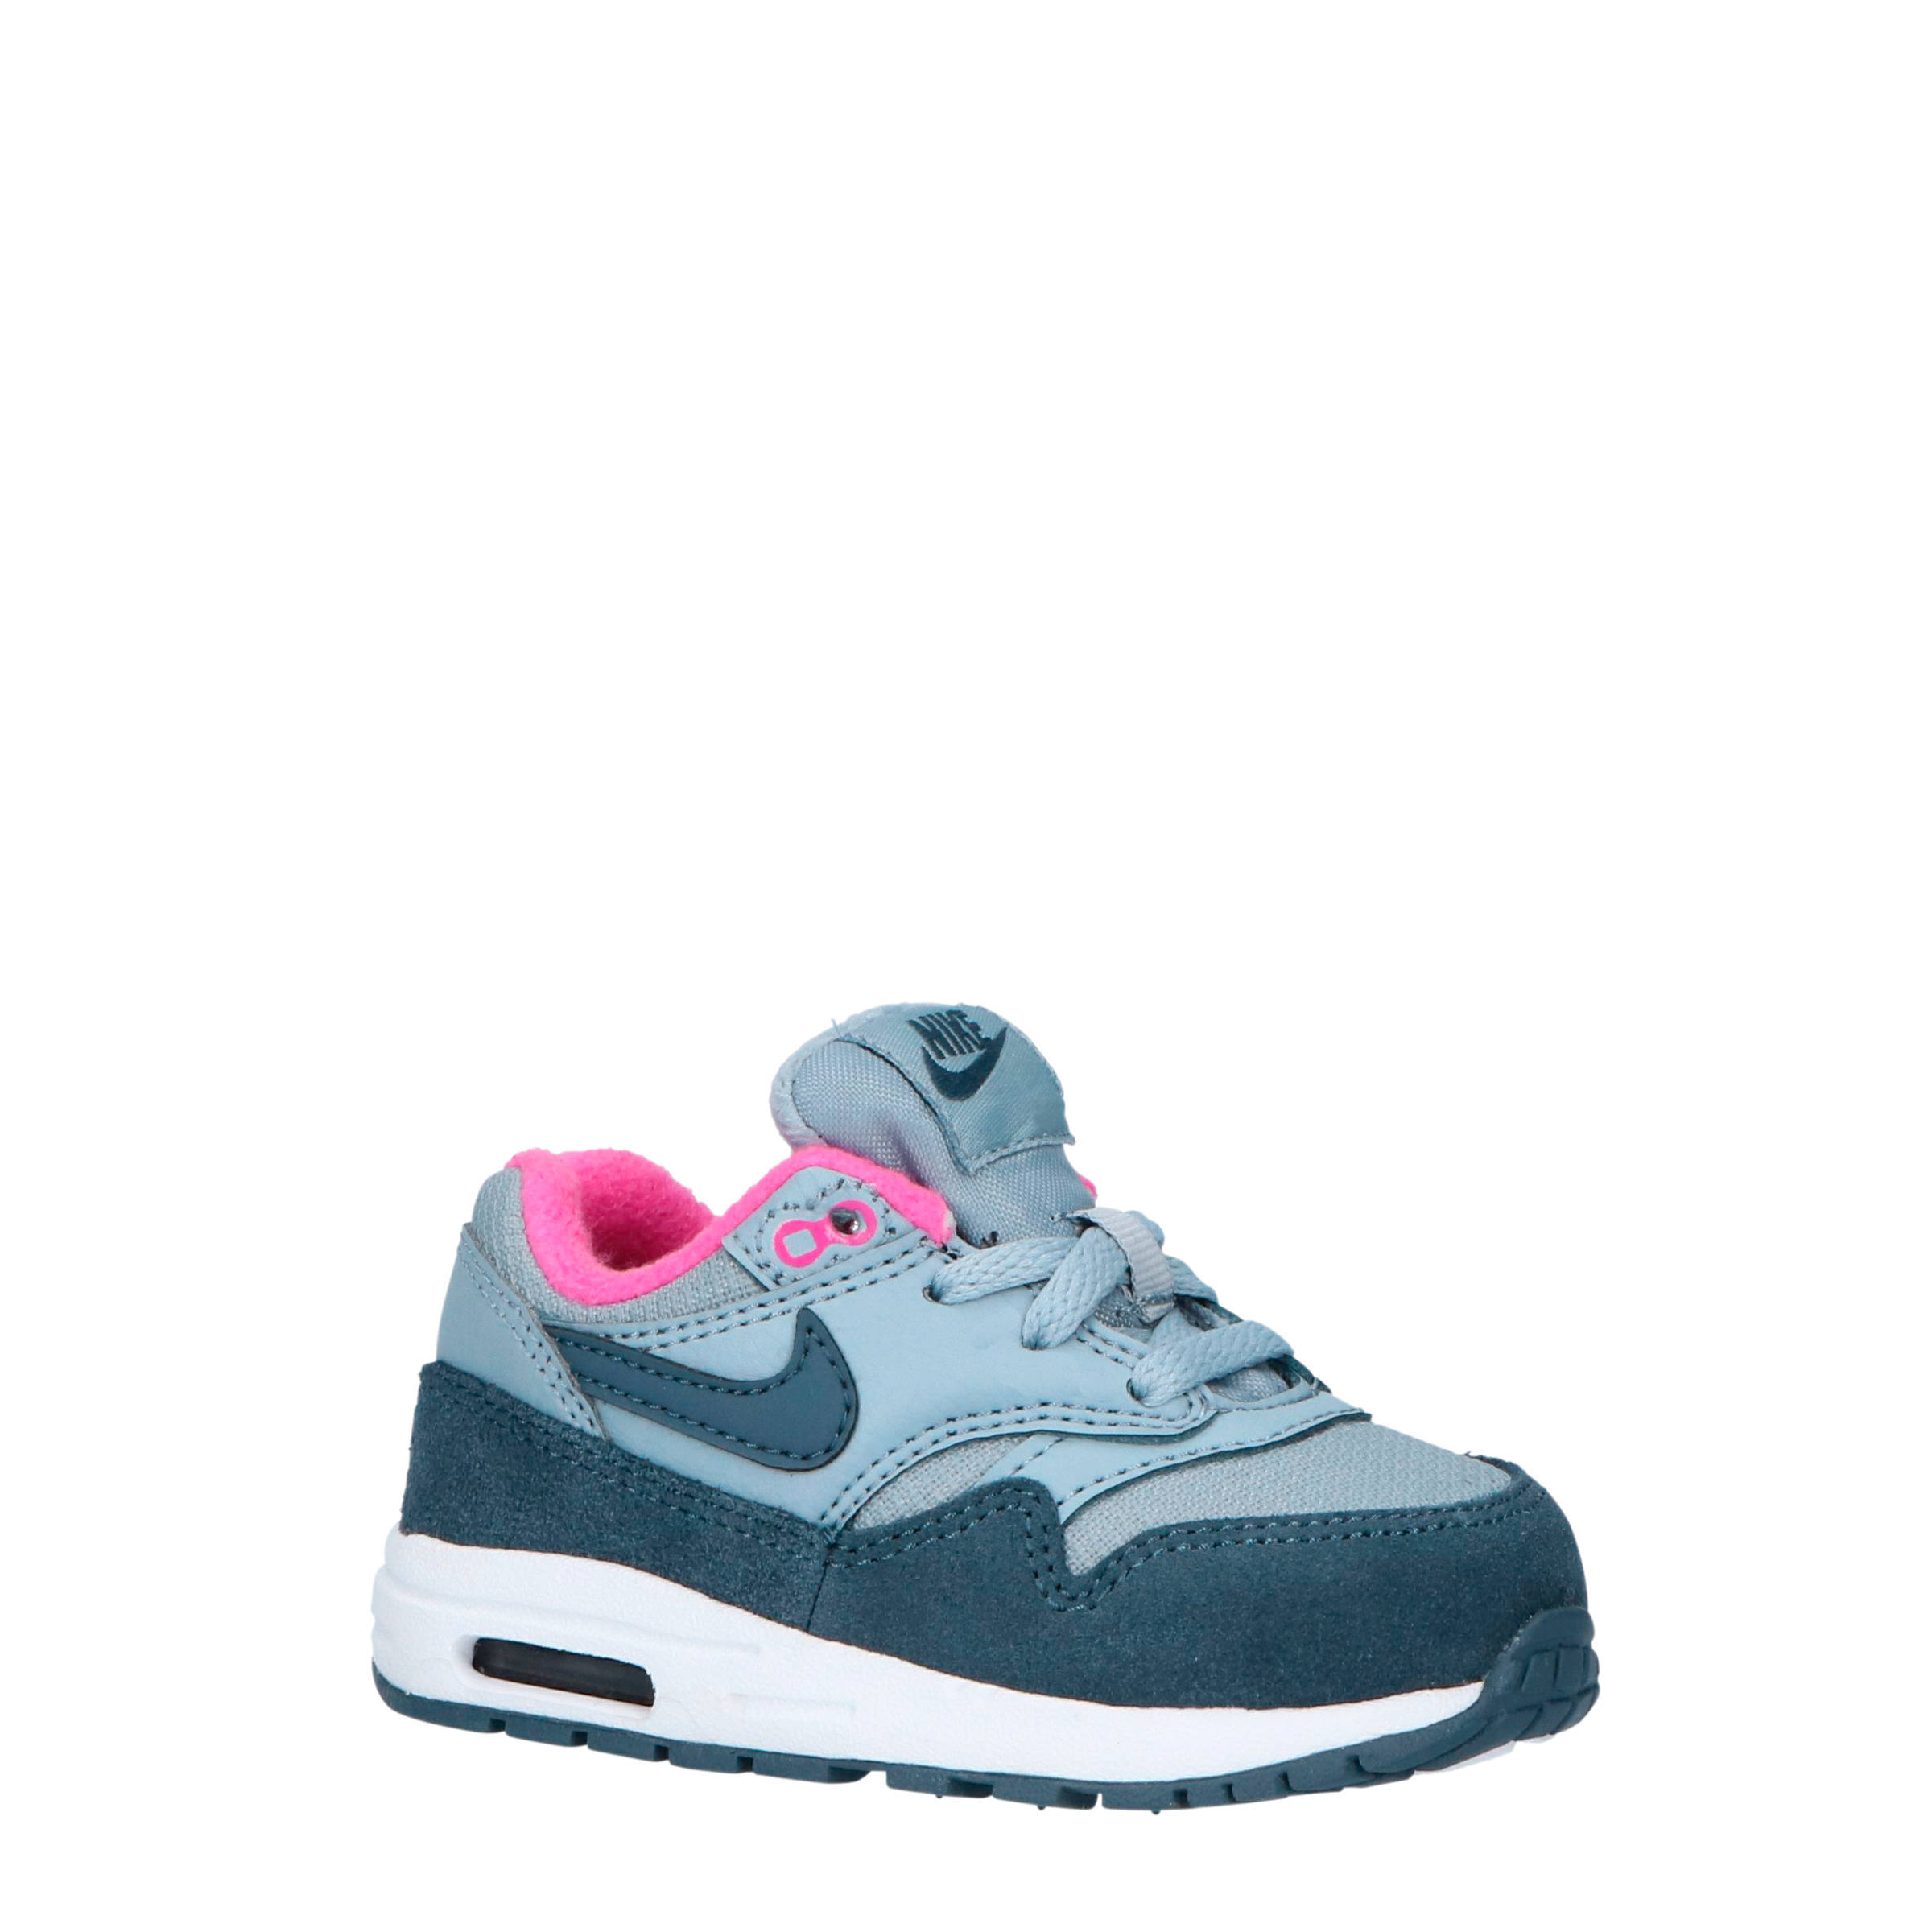 nike air max 1 dames donkerblauw